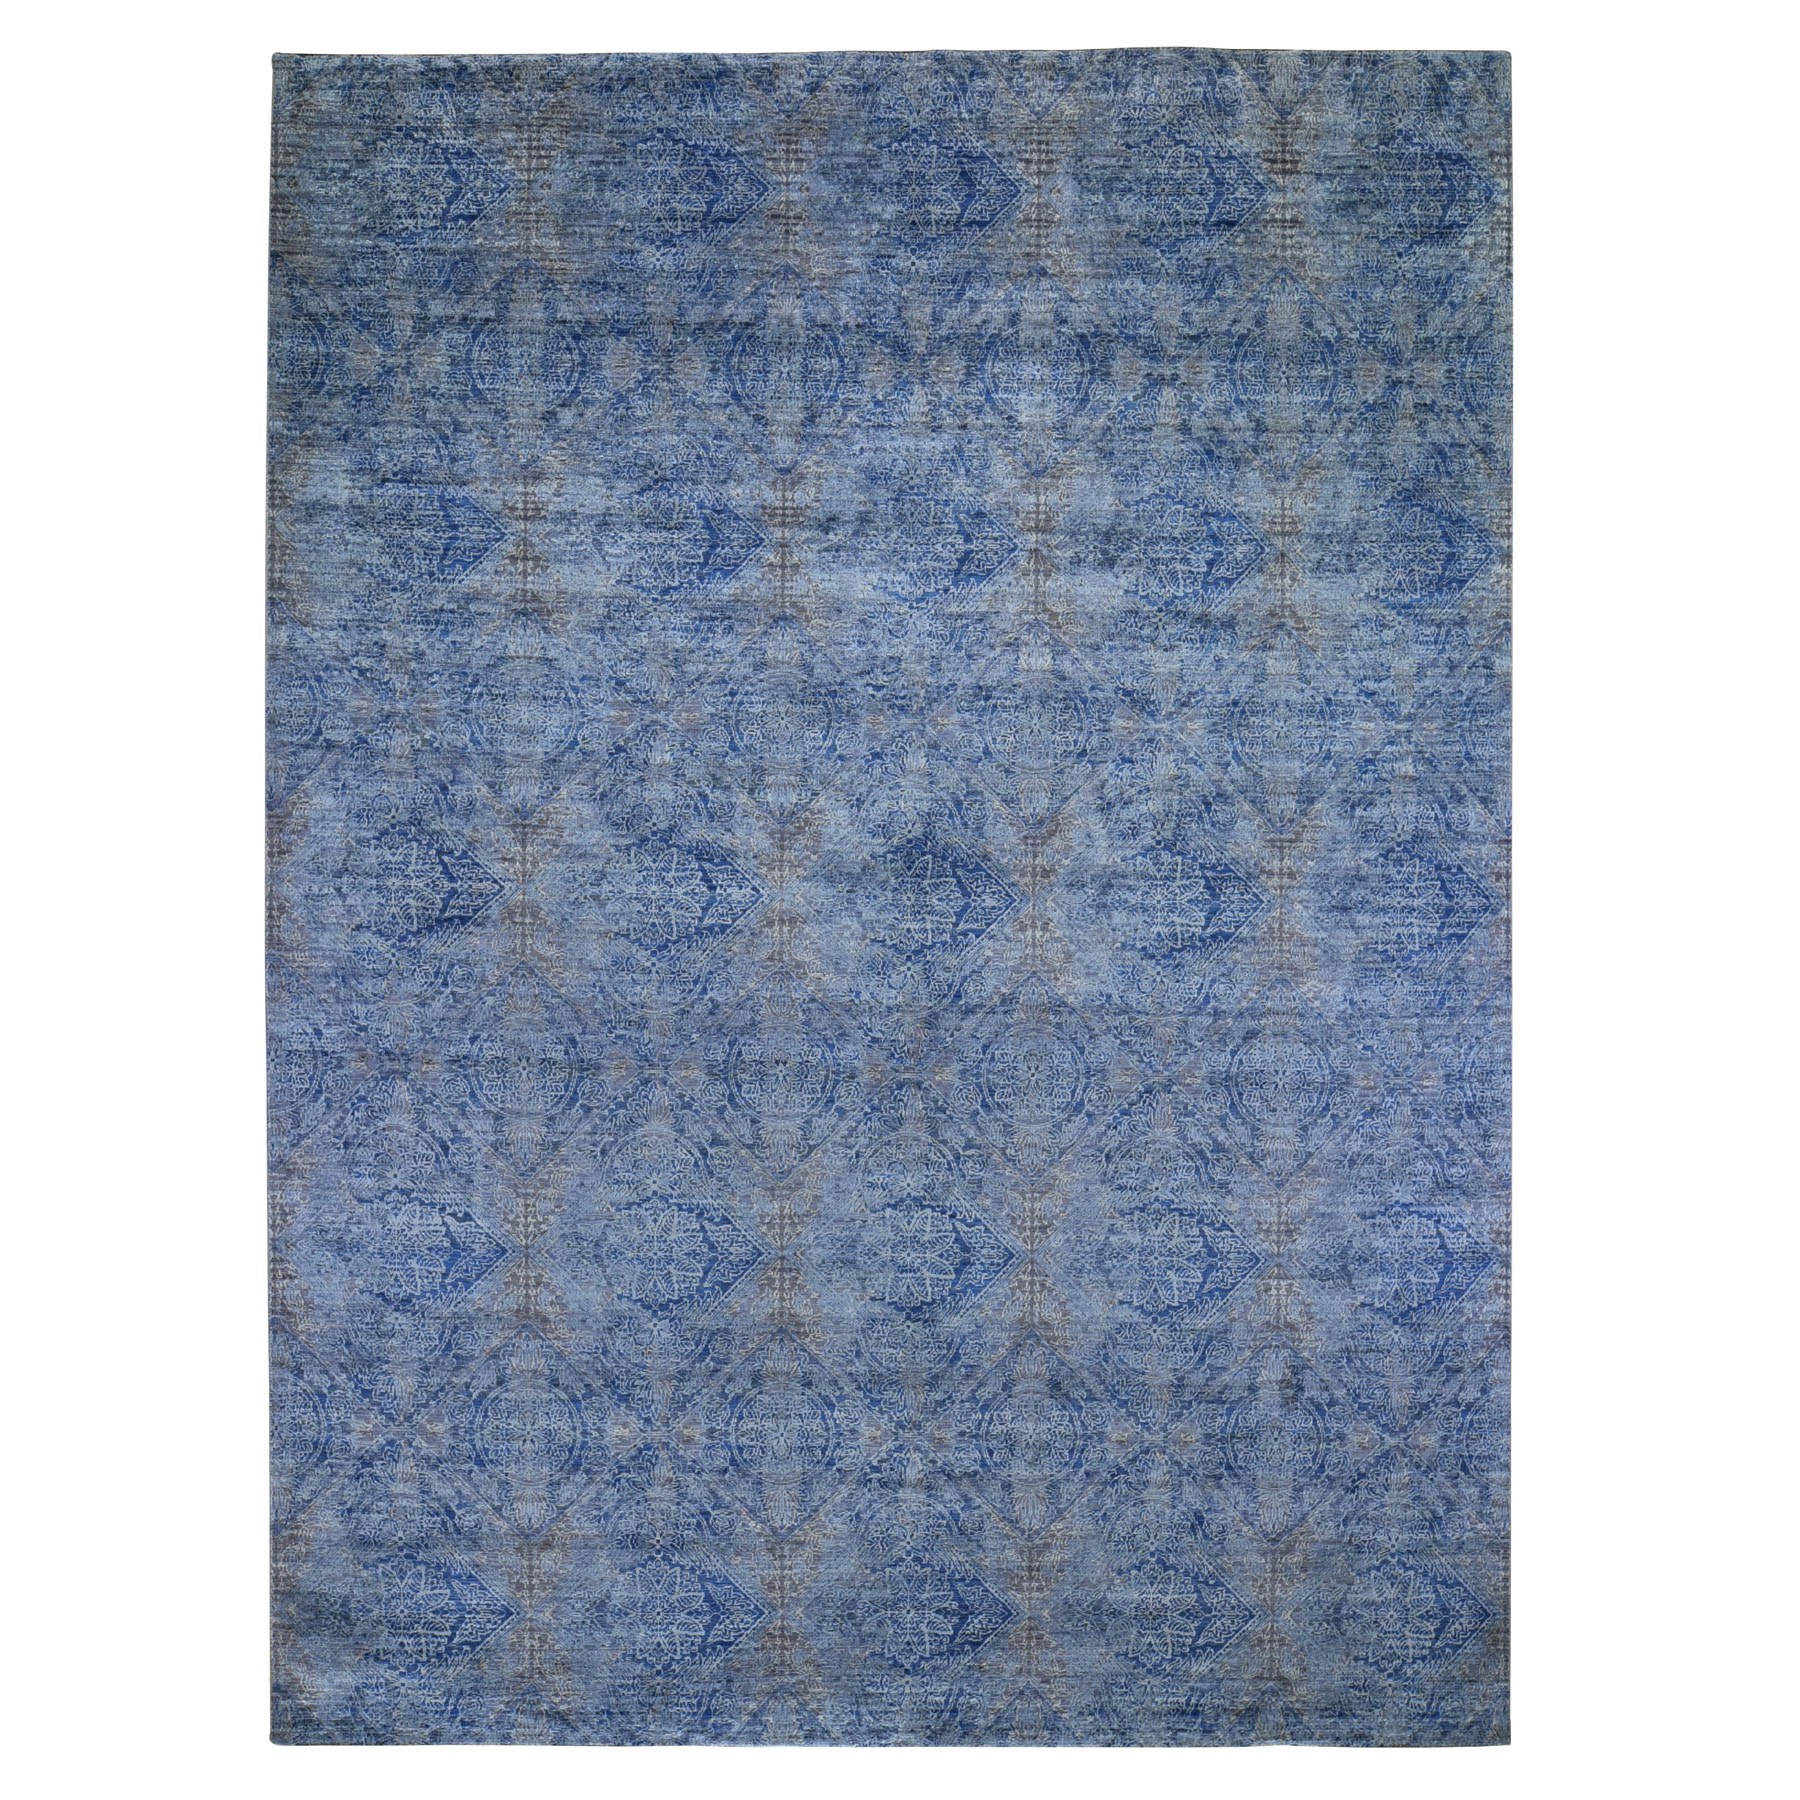 9'X12' Denim Blue Erased Rossets, Silk With Textured Wool Hand Knotted Oriental Rug moad9c9d